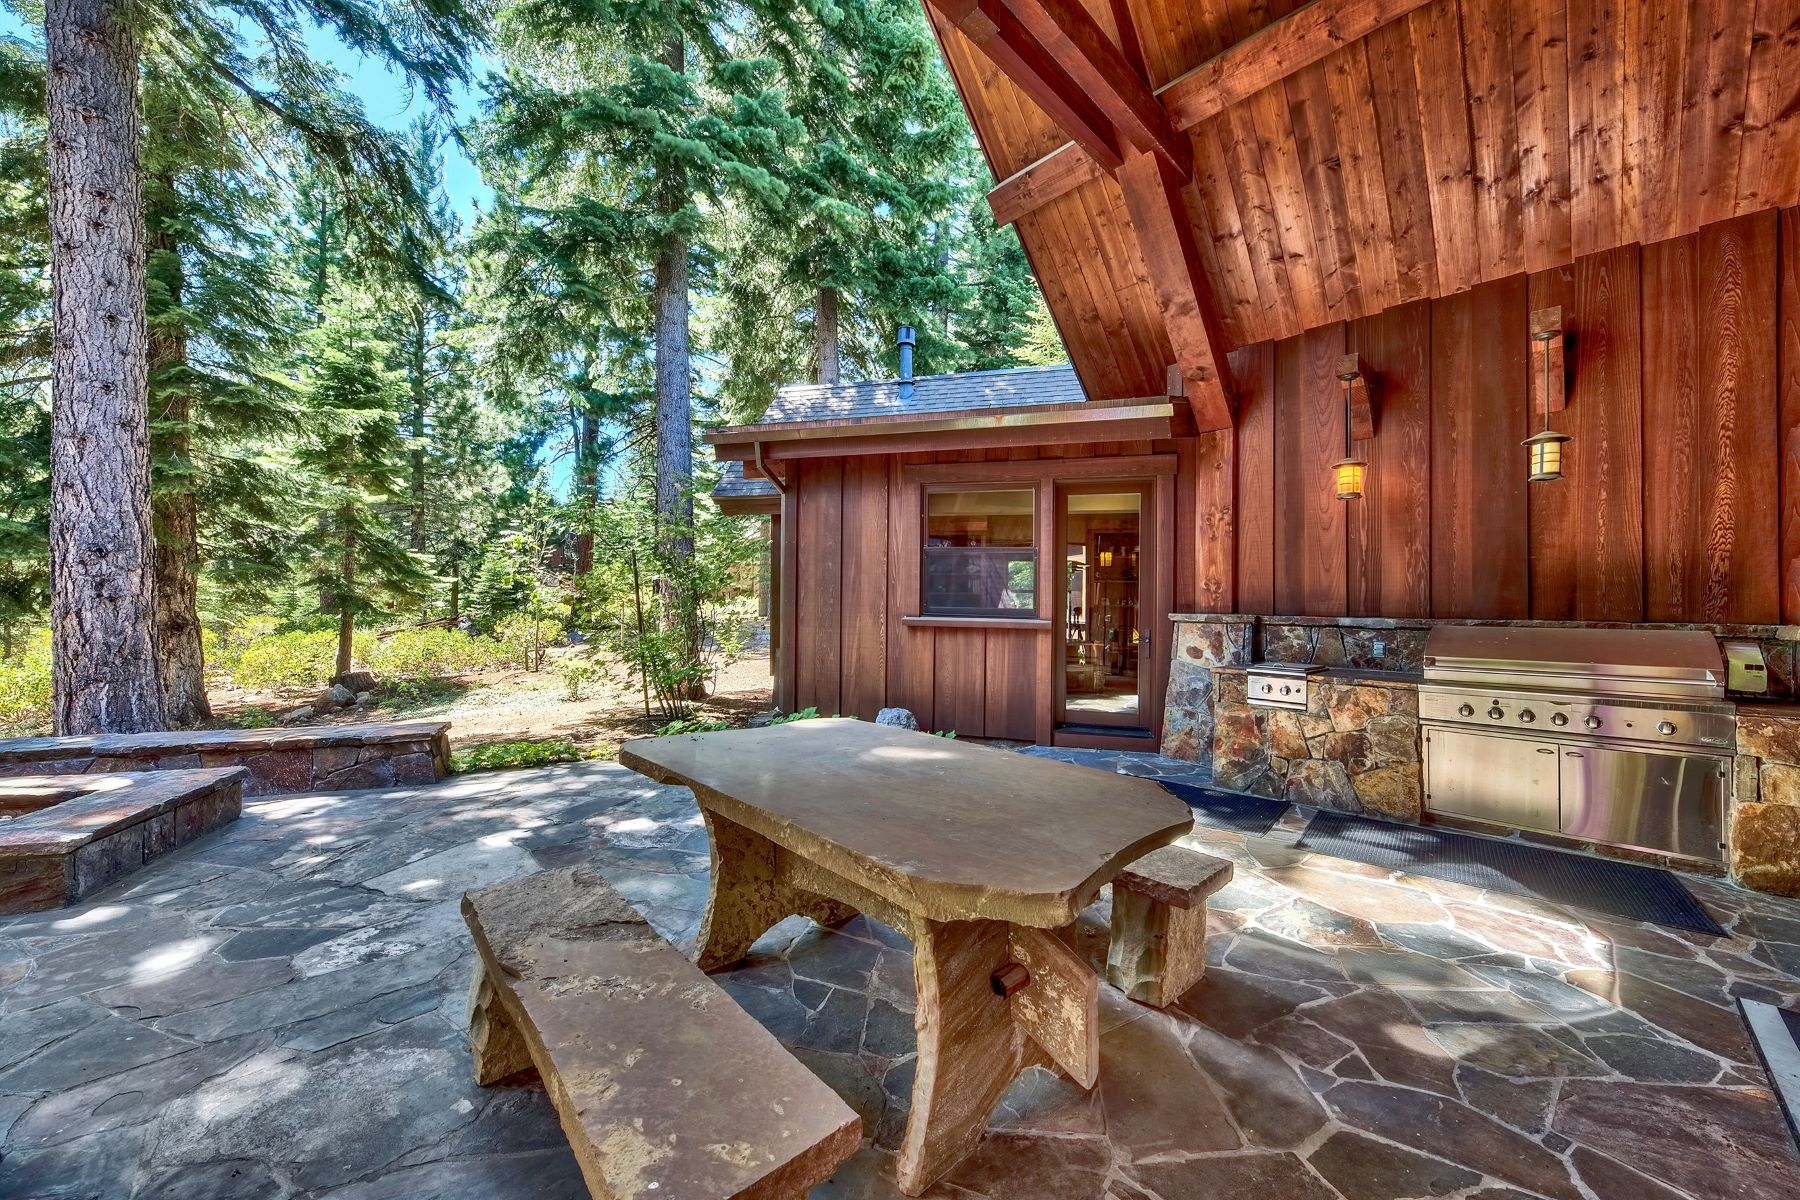 Additional photo for property listing at 1736 Grouse Ridge Road, Truckee 1736 Grouse Ridge Road Truckee, California 96161 Estados Unidos